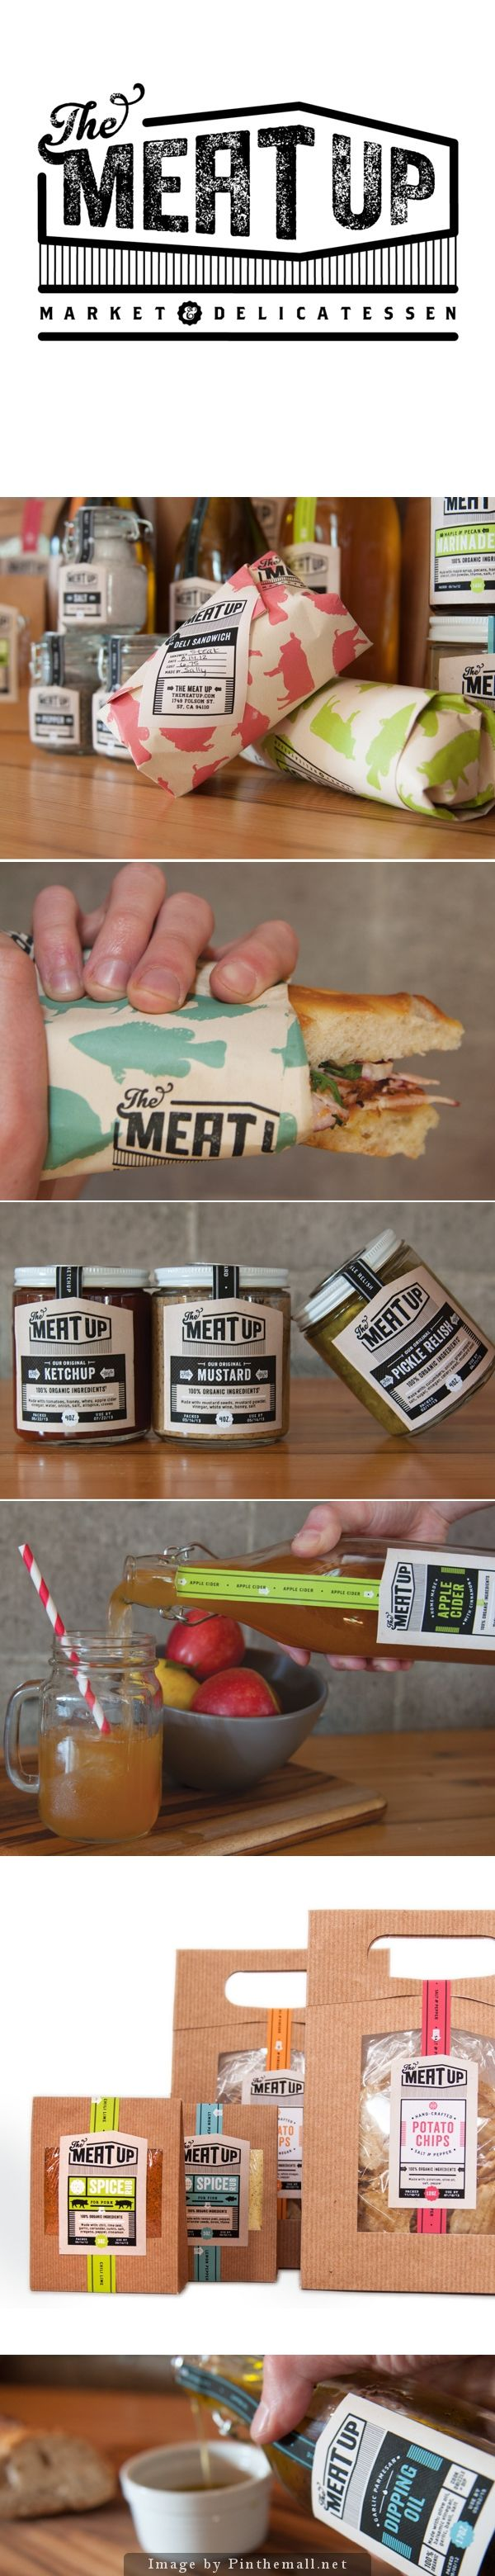 Identity / packaging / The Meat Up by Andrea Falke